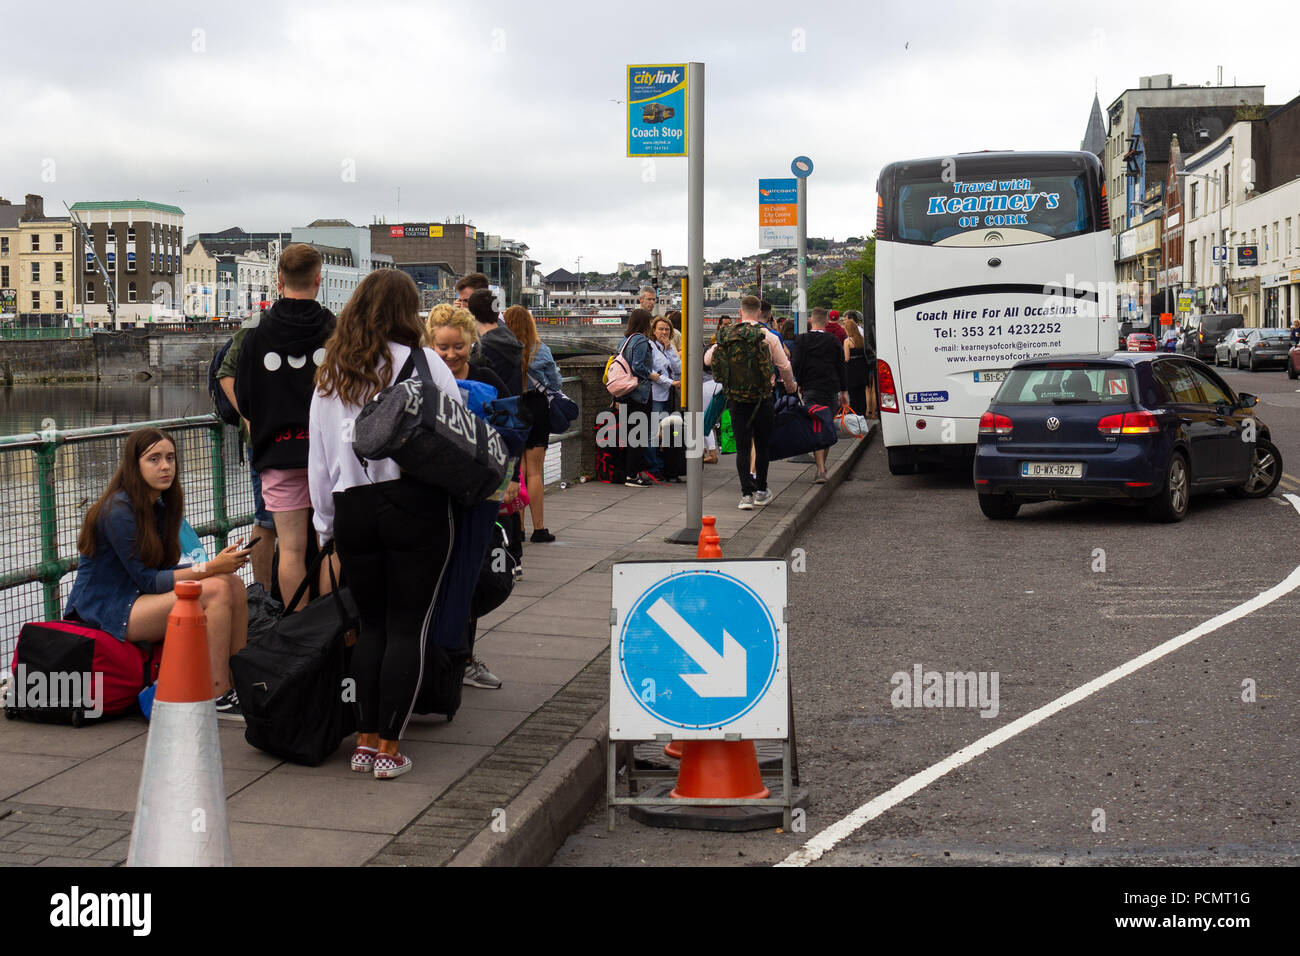 Limerick to Mitchelstown - 3 ways to travel via bus, taxi, and car